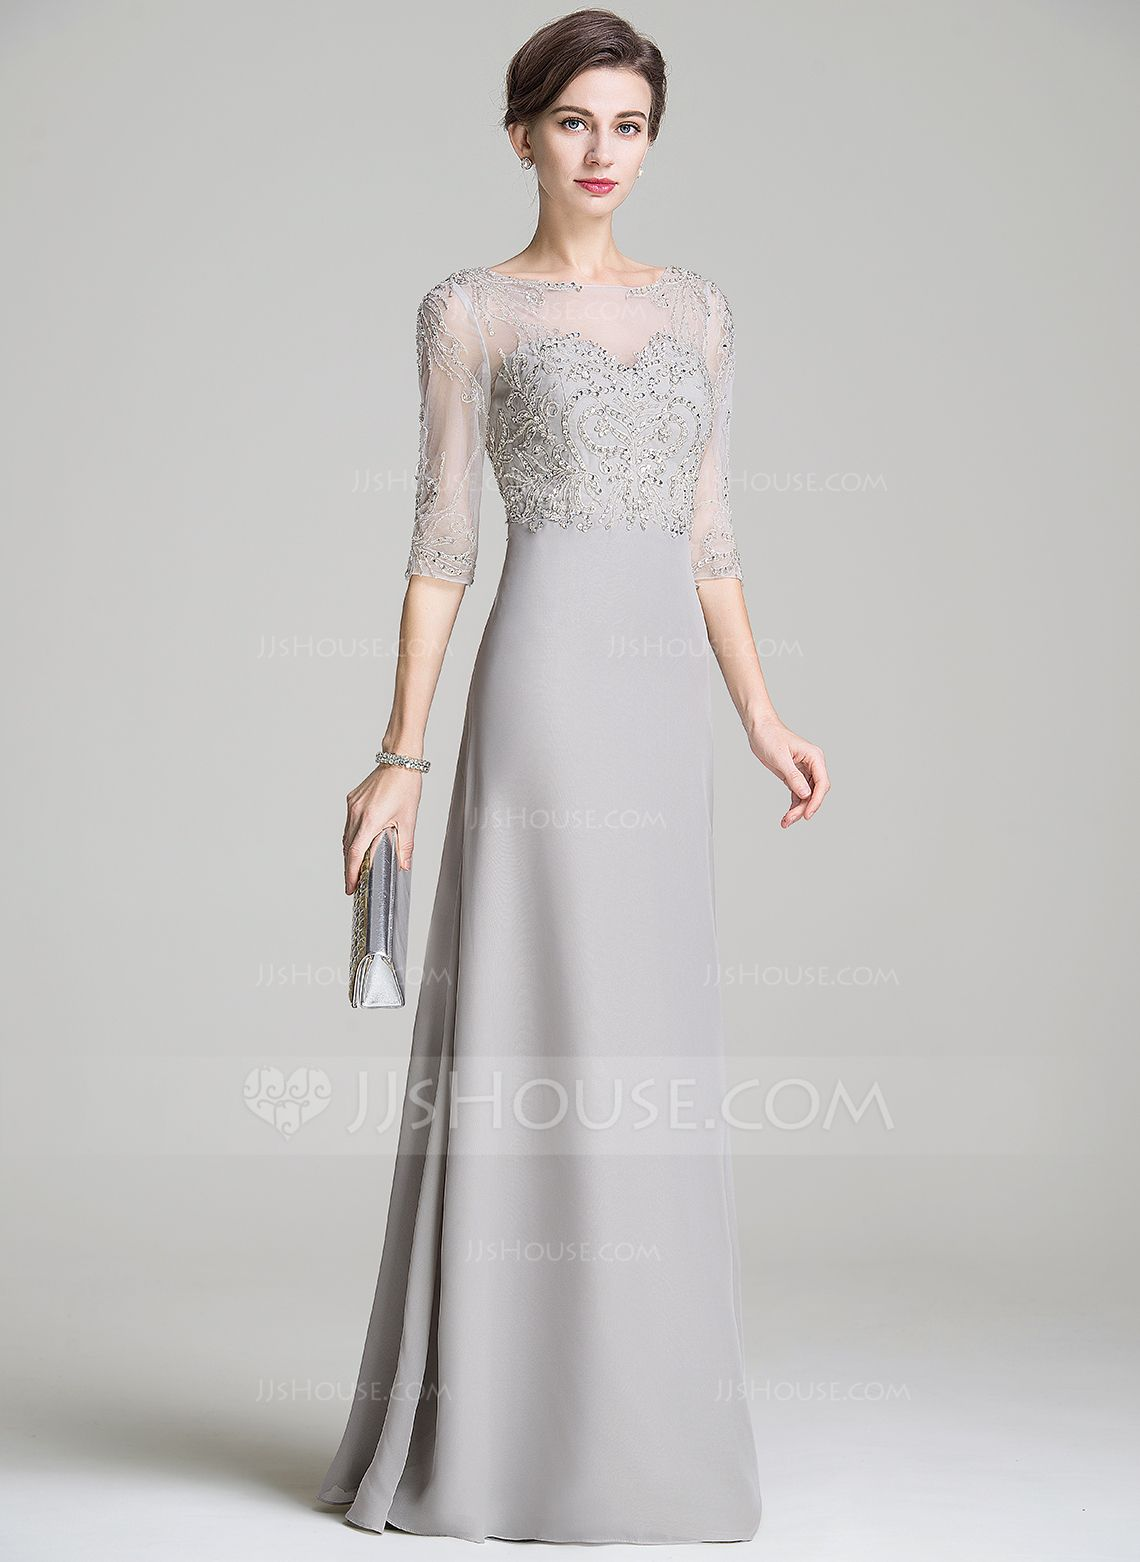 4cc4f4232c783 A-Line/Princess Scoop Neck Floor-Length Beading Appliques Lace Sequins  Zipper Up Sleeves 1/2 Sleeves No 2016 Silver Spring Summer Fall General  Plus Chiffon ...